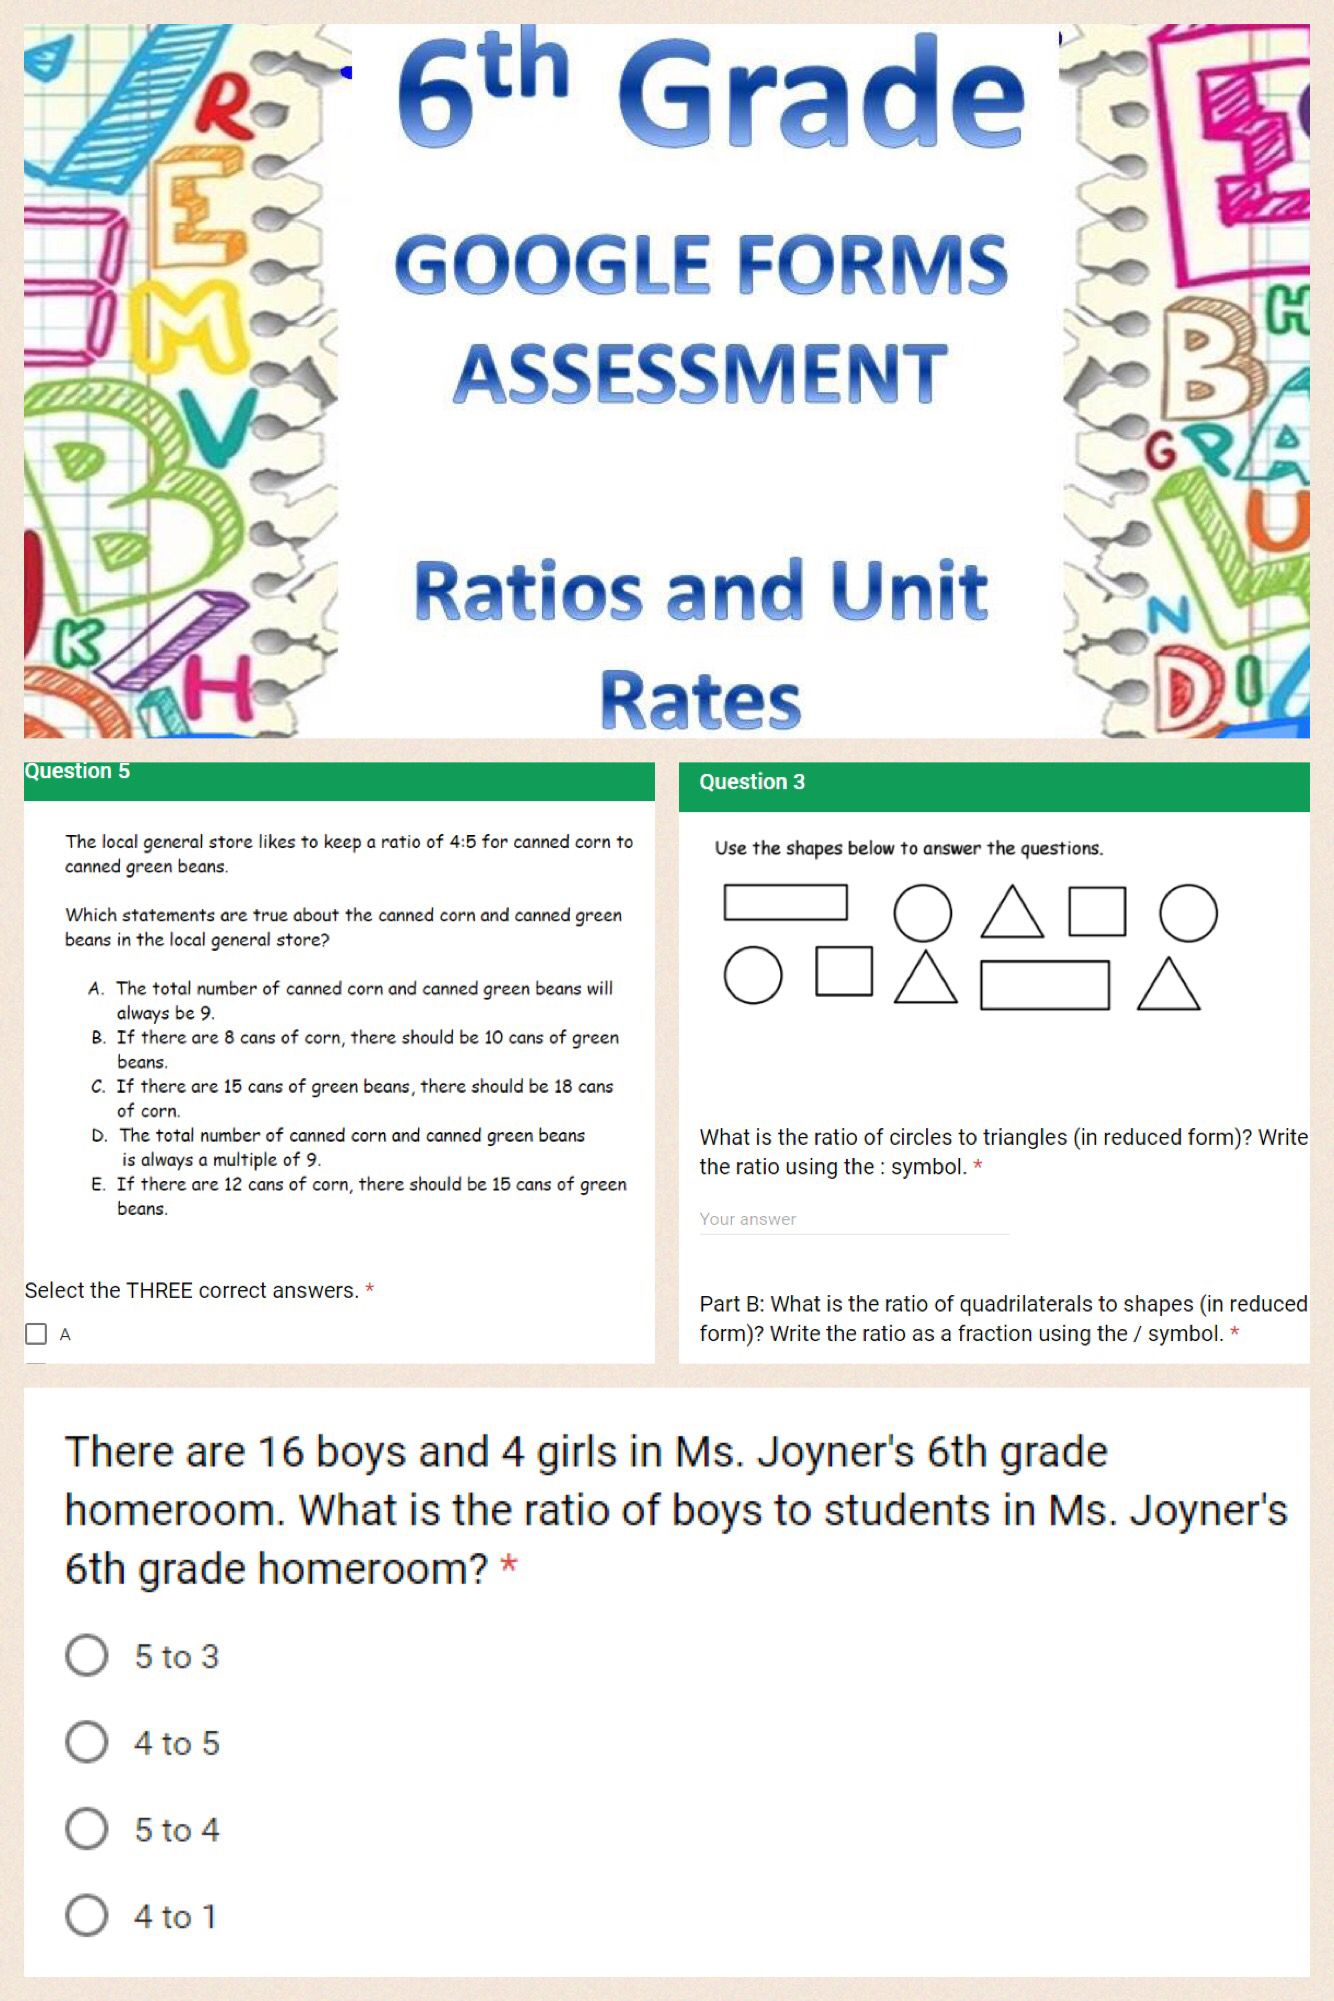 small resolution of 6th Grade Ratios and Unit Rates Google Forms Assessment   Free math  worksheets